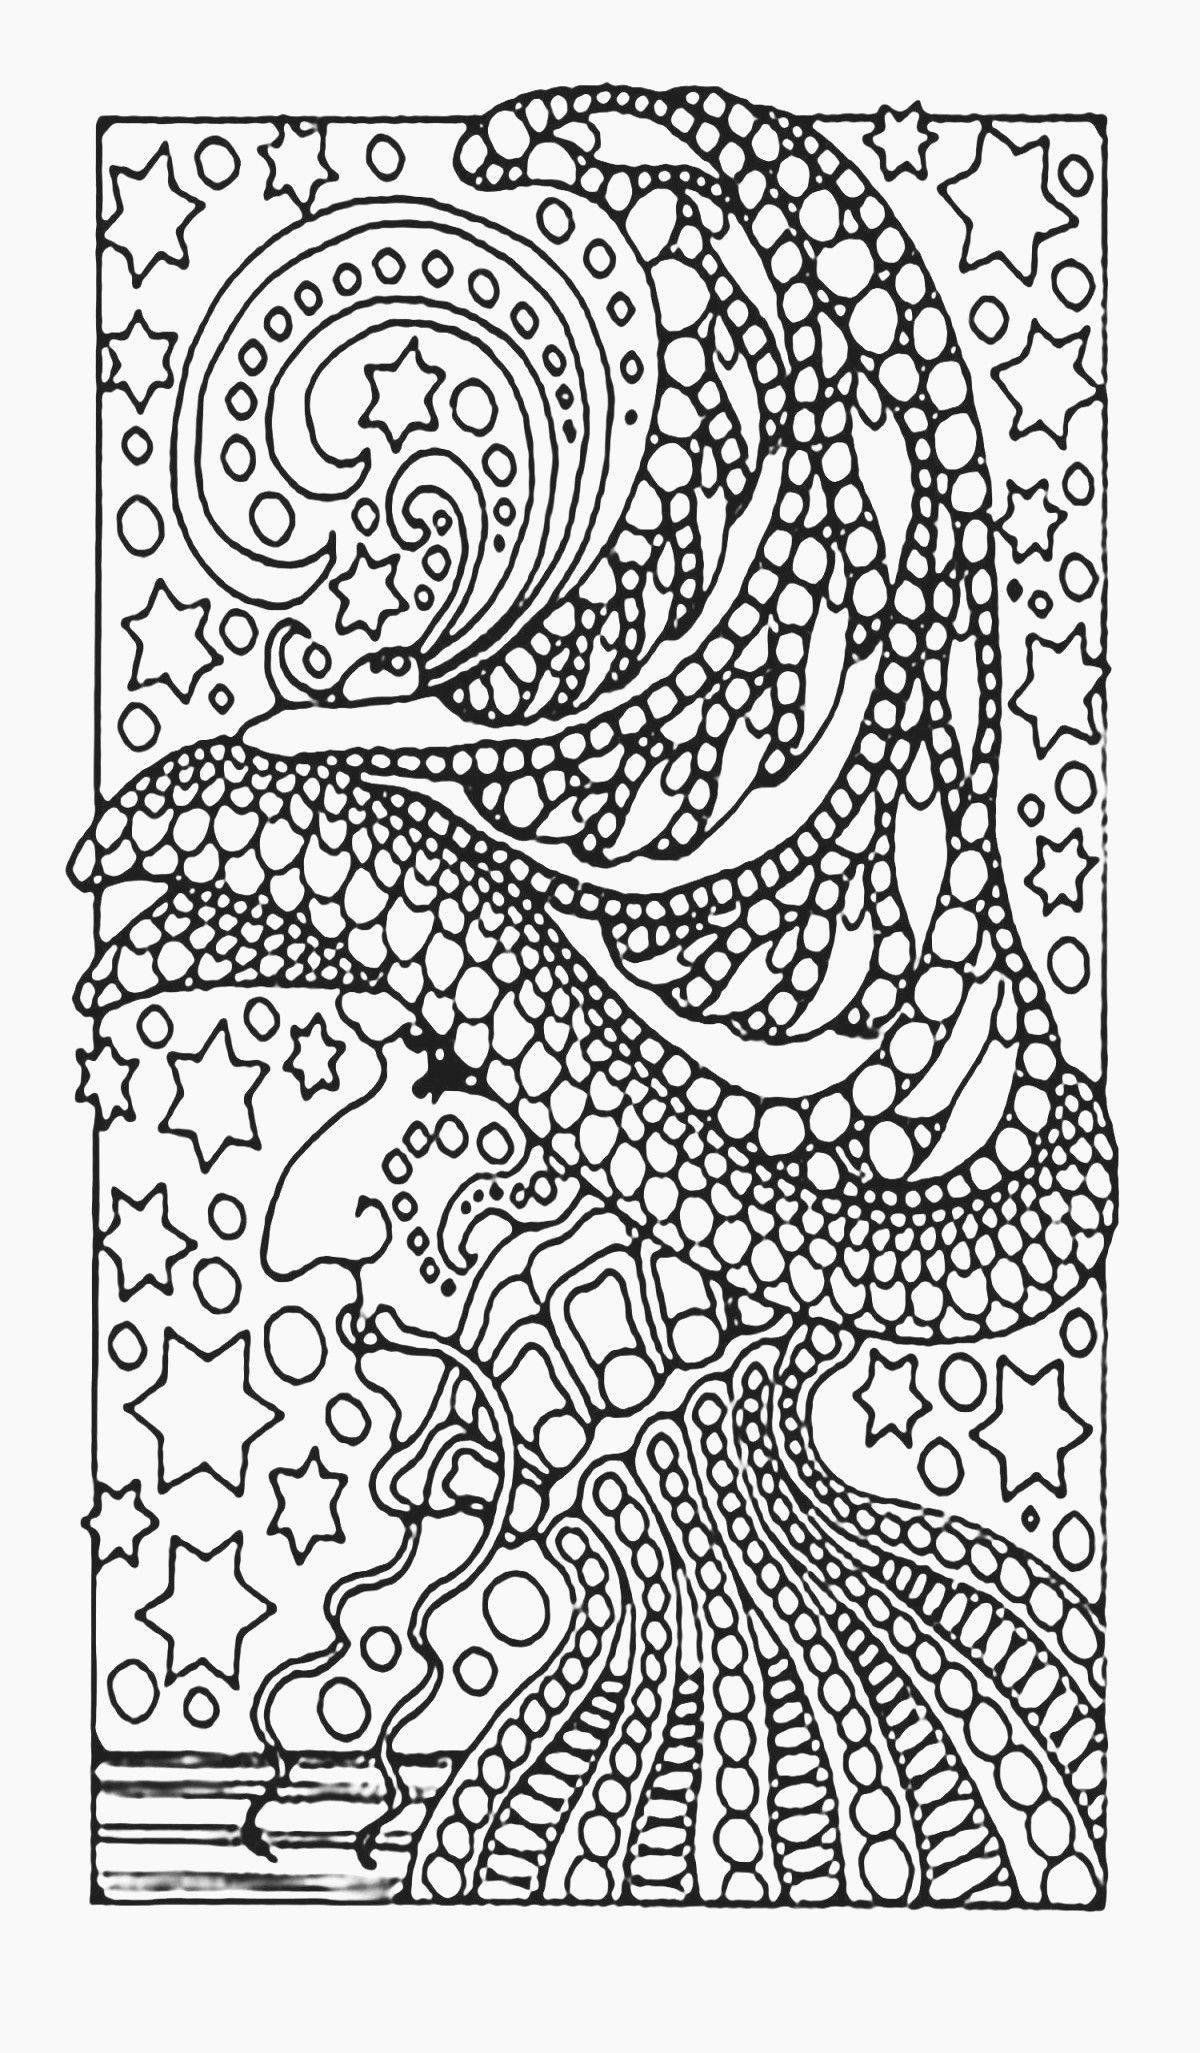 Drawing Book Space Cayola Fresh Best Coloring Books Cheap In 2020 Witch Coloring Pages Coloring Pages Inspirational Mandala Coloring Pages